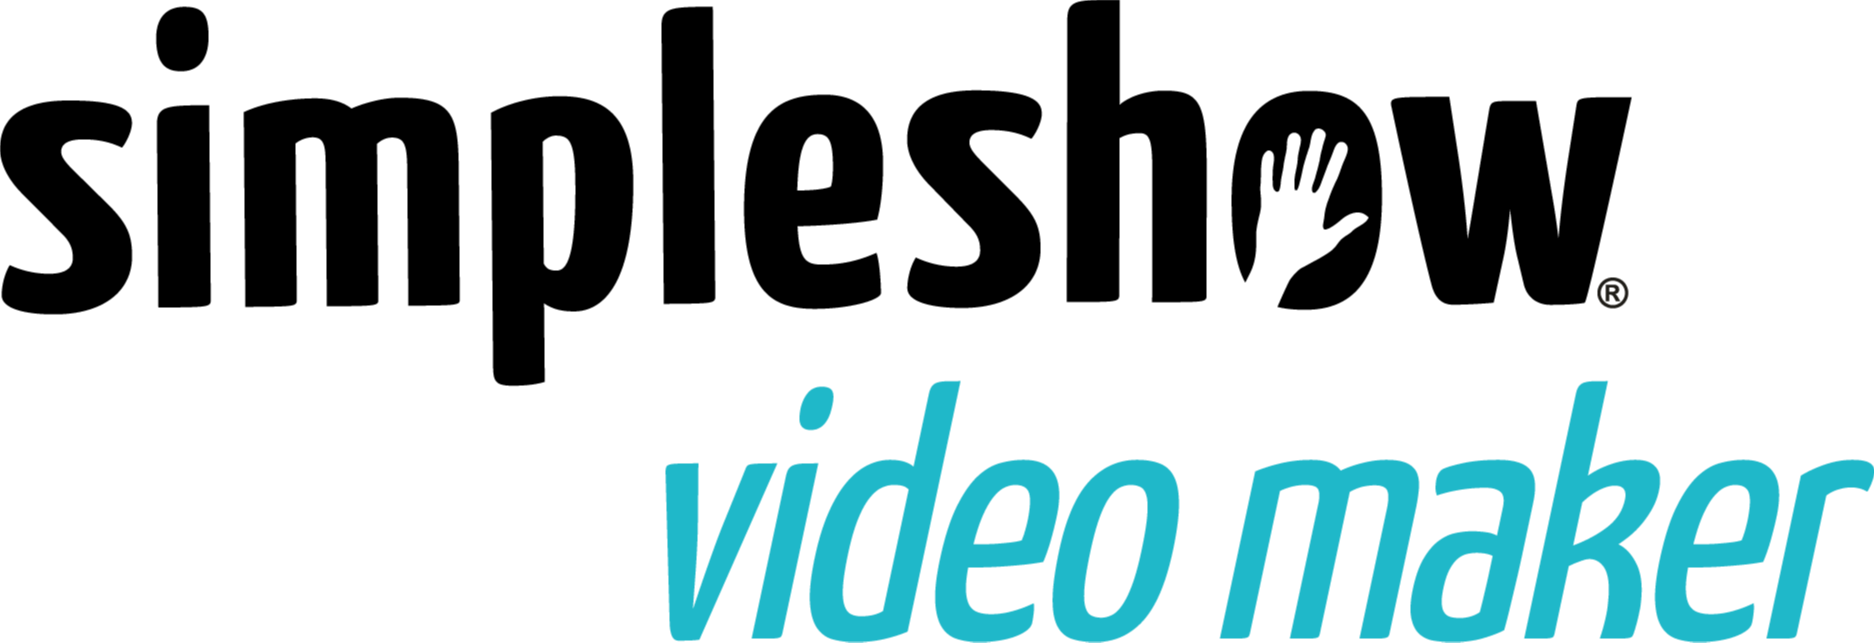 Simpleshow video maker ohne sperre